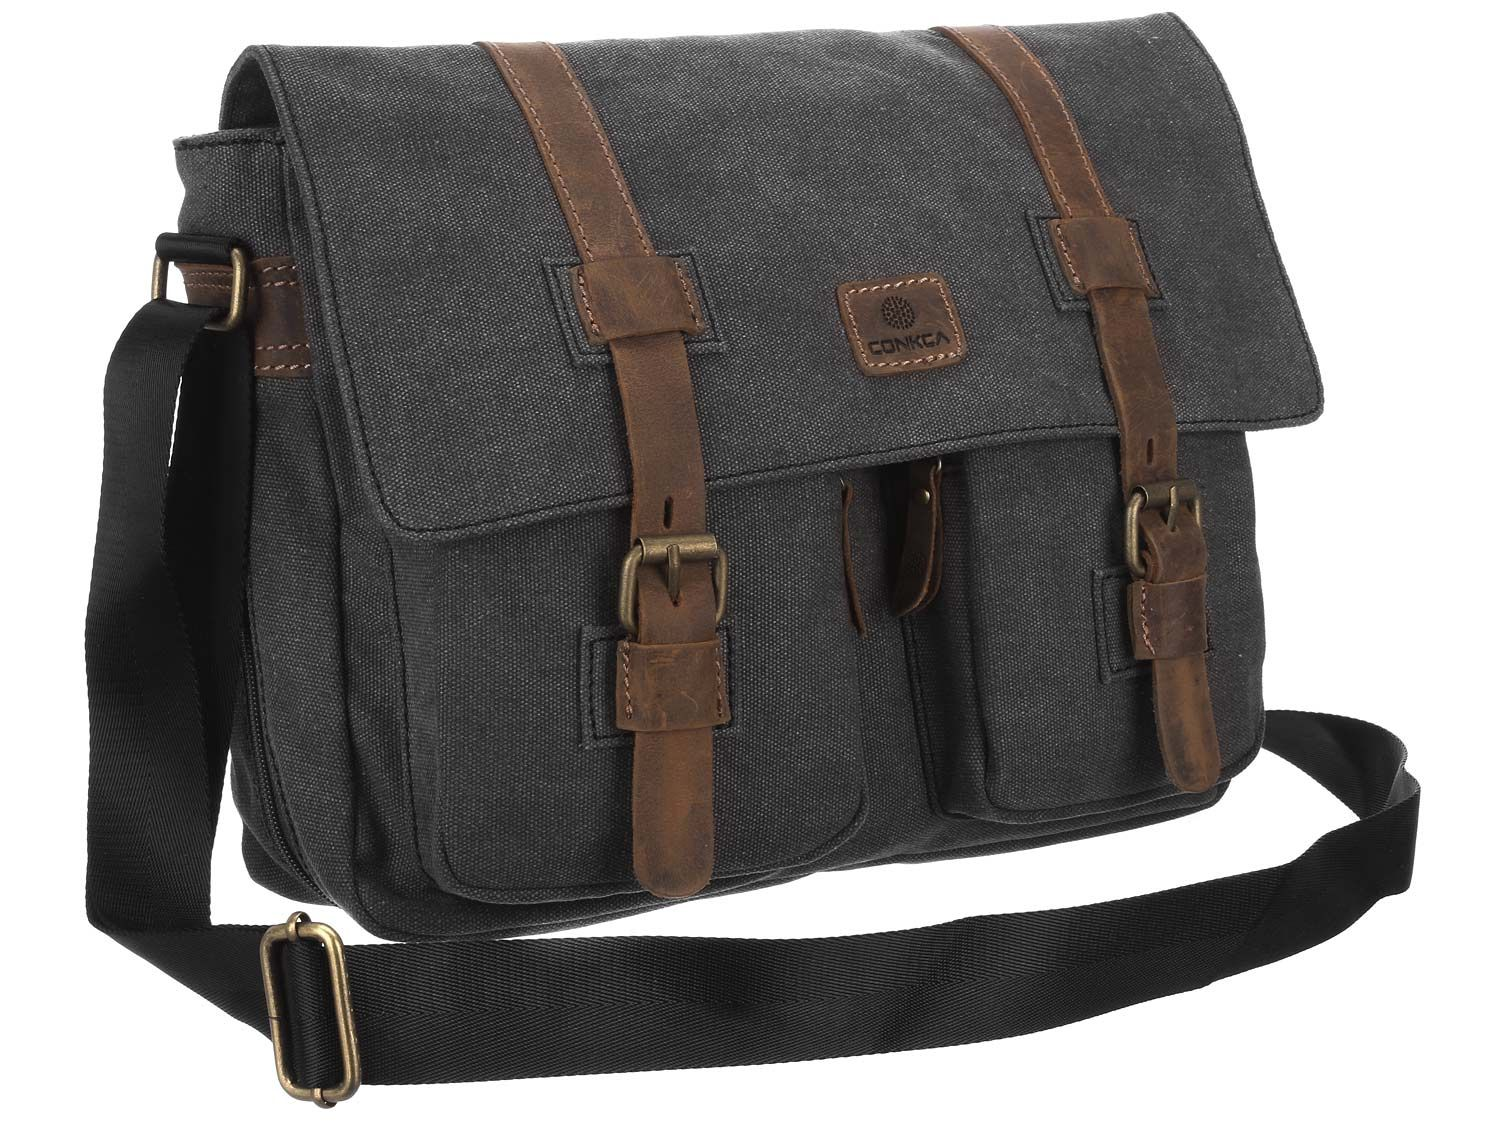 Black Canvas Messenger Bag Mhktxu | Accessoires mode homme | Pinterest